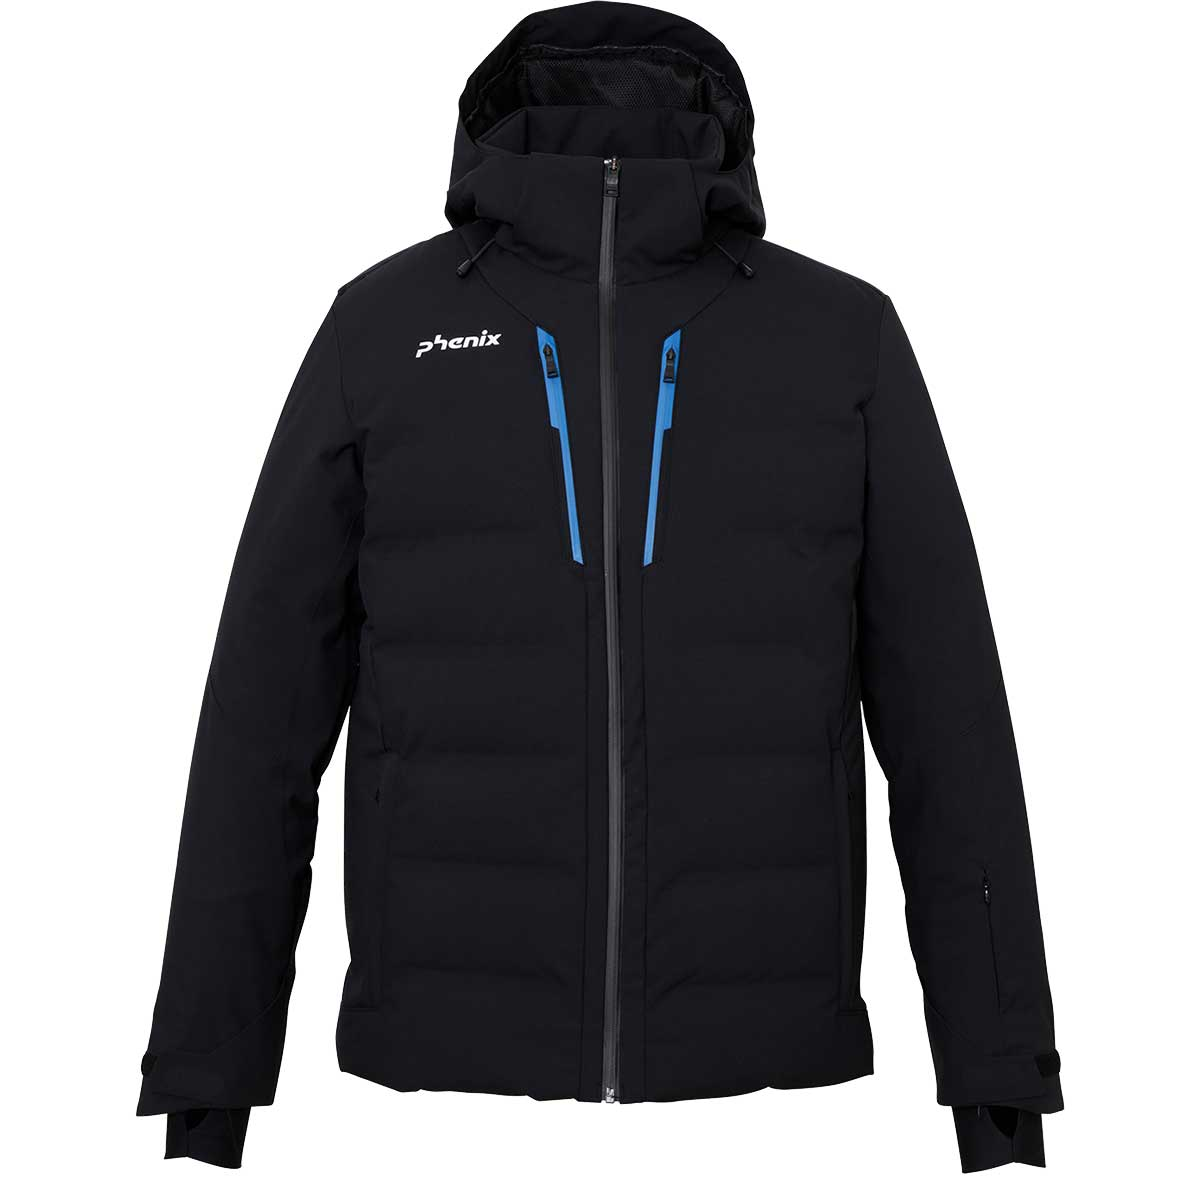 Phenix men's Escala Jacket in Black and Blue main view